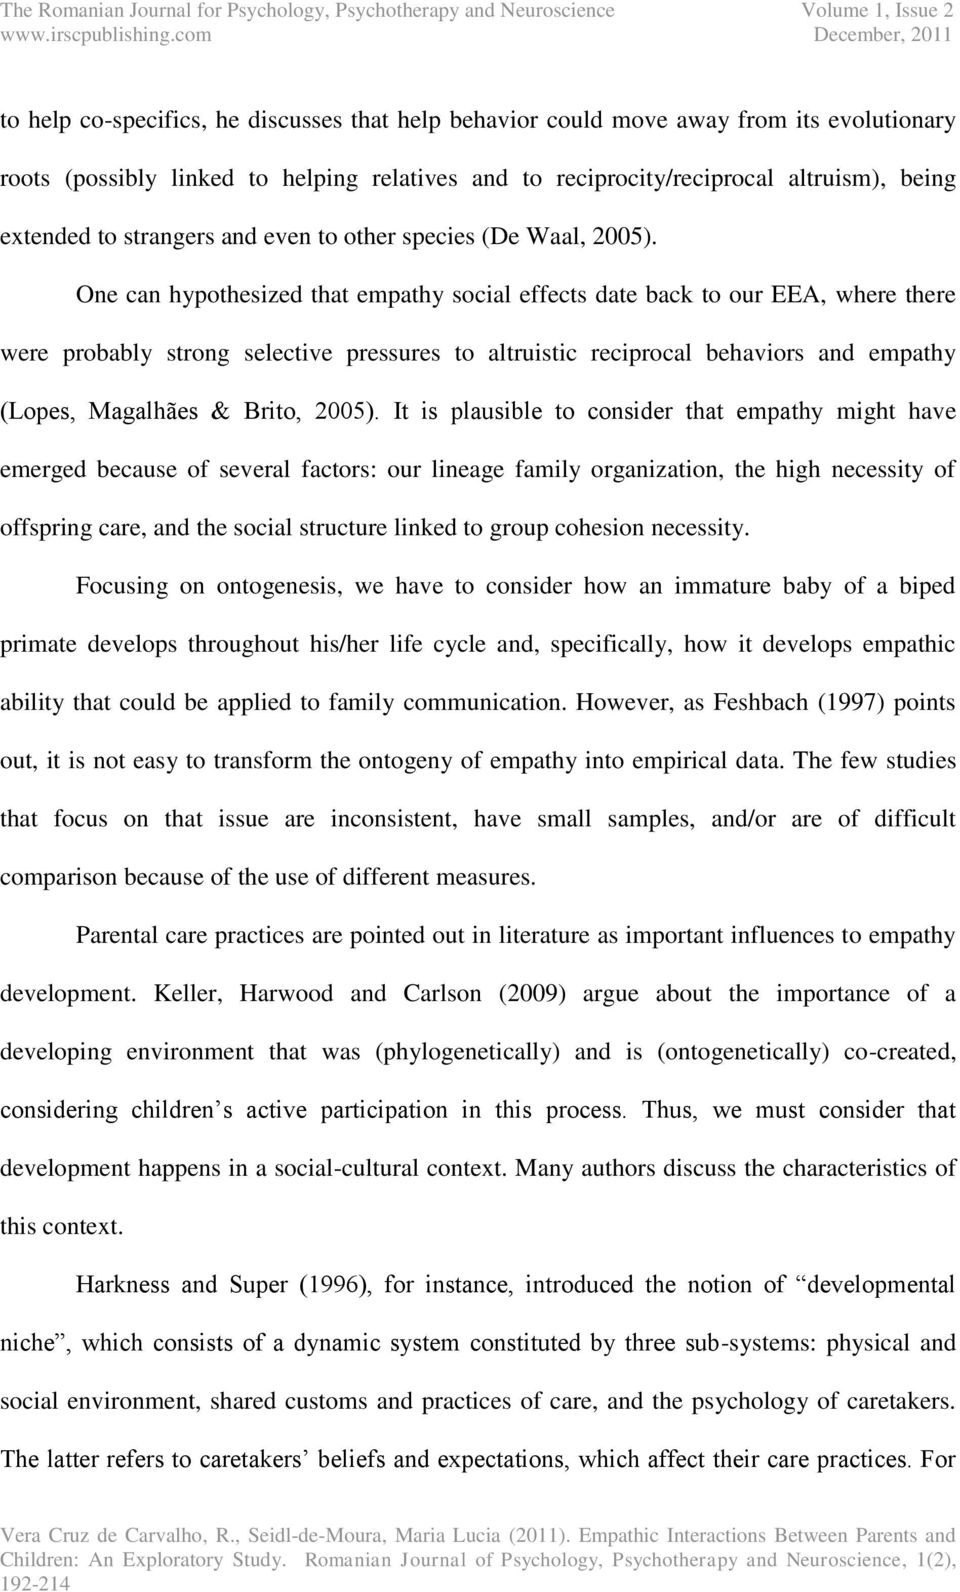 One can hypothesized that empathy social effects date back to our EEA, where there were probably strong selective pressures to altruistic reciprocal behaviors and empathy (Lopes, Magalhães & Brito,